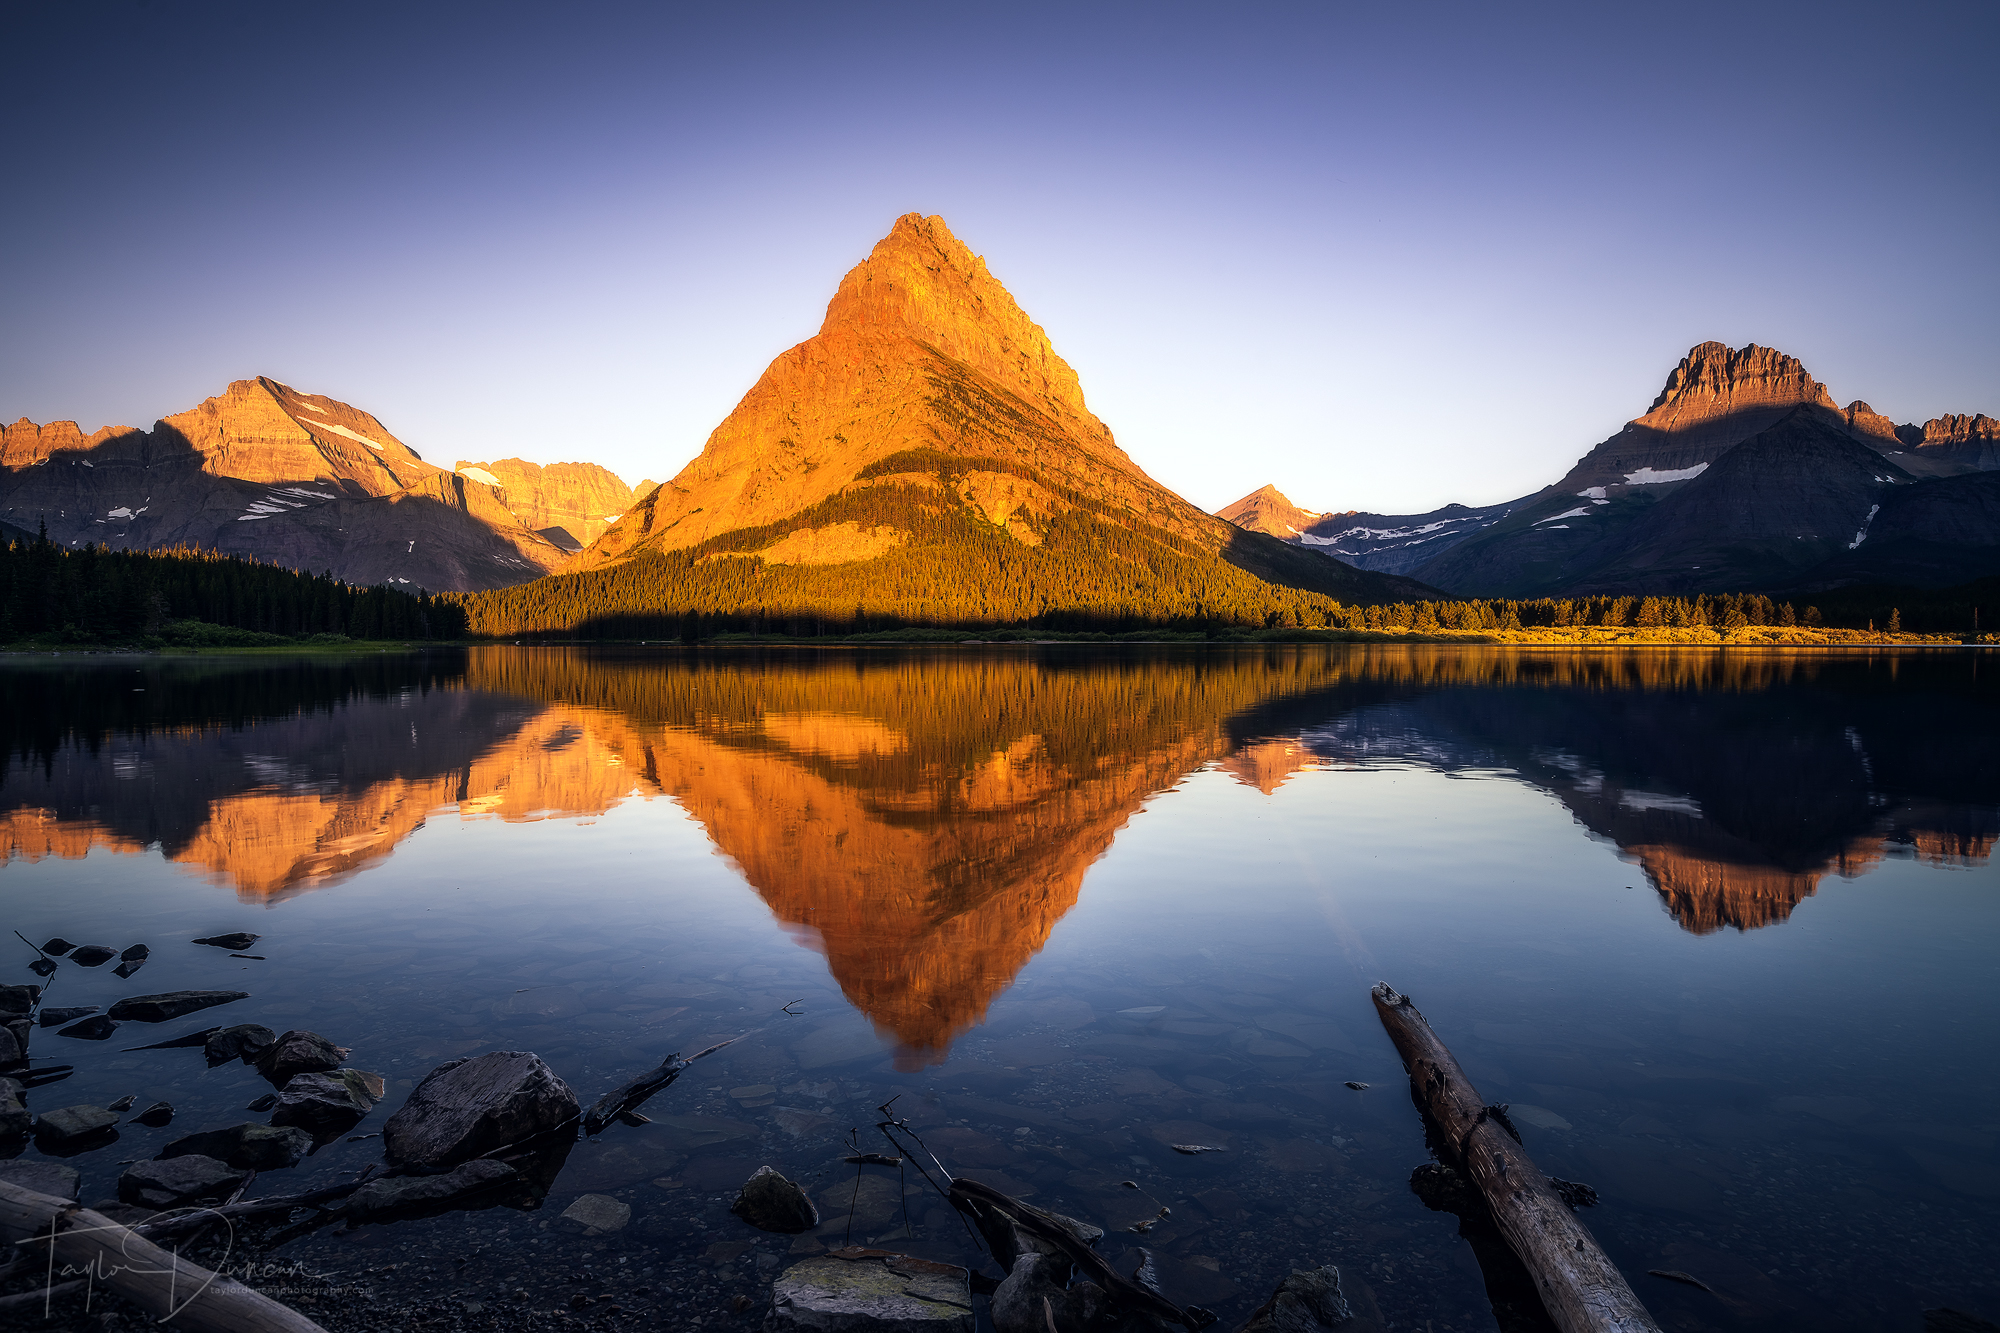 You can witness one of the most beautiful sunrises in the world right from the Many Glacier Hotel